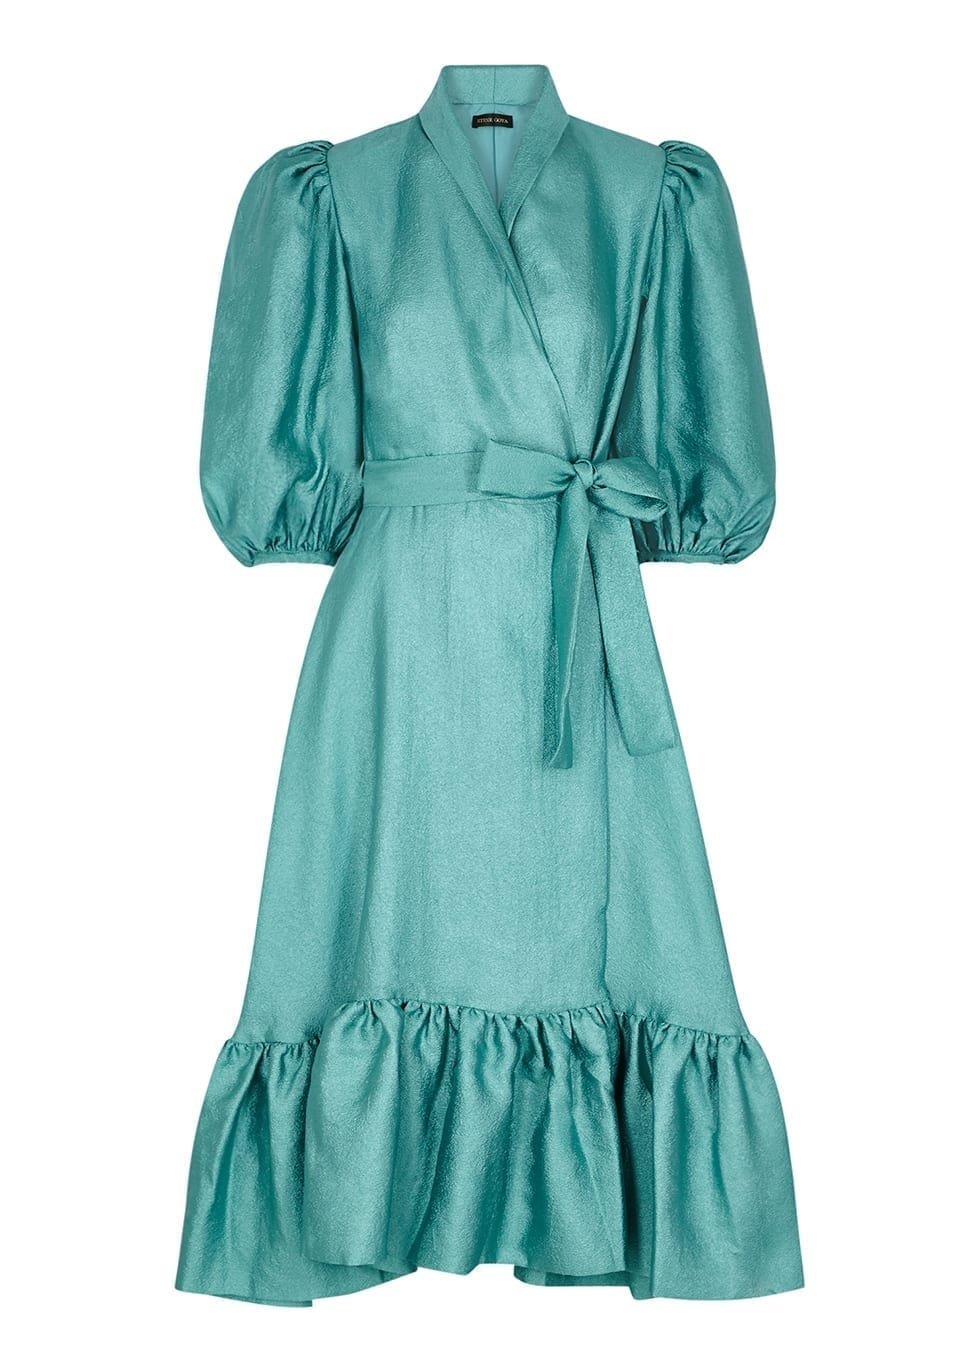 STINE GOYA Chinie Metallic Aqua Wrap Dress